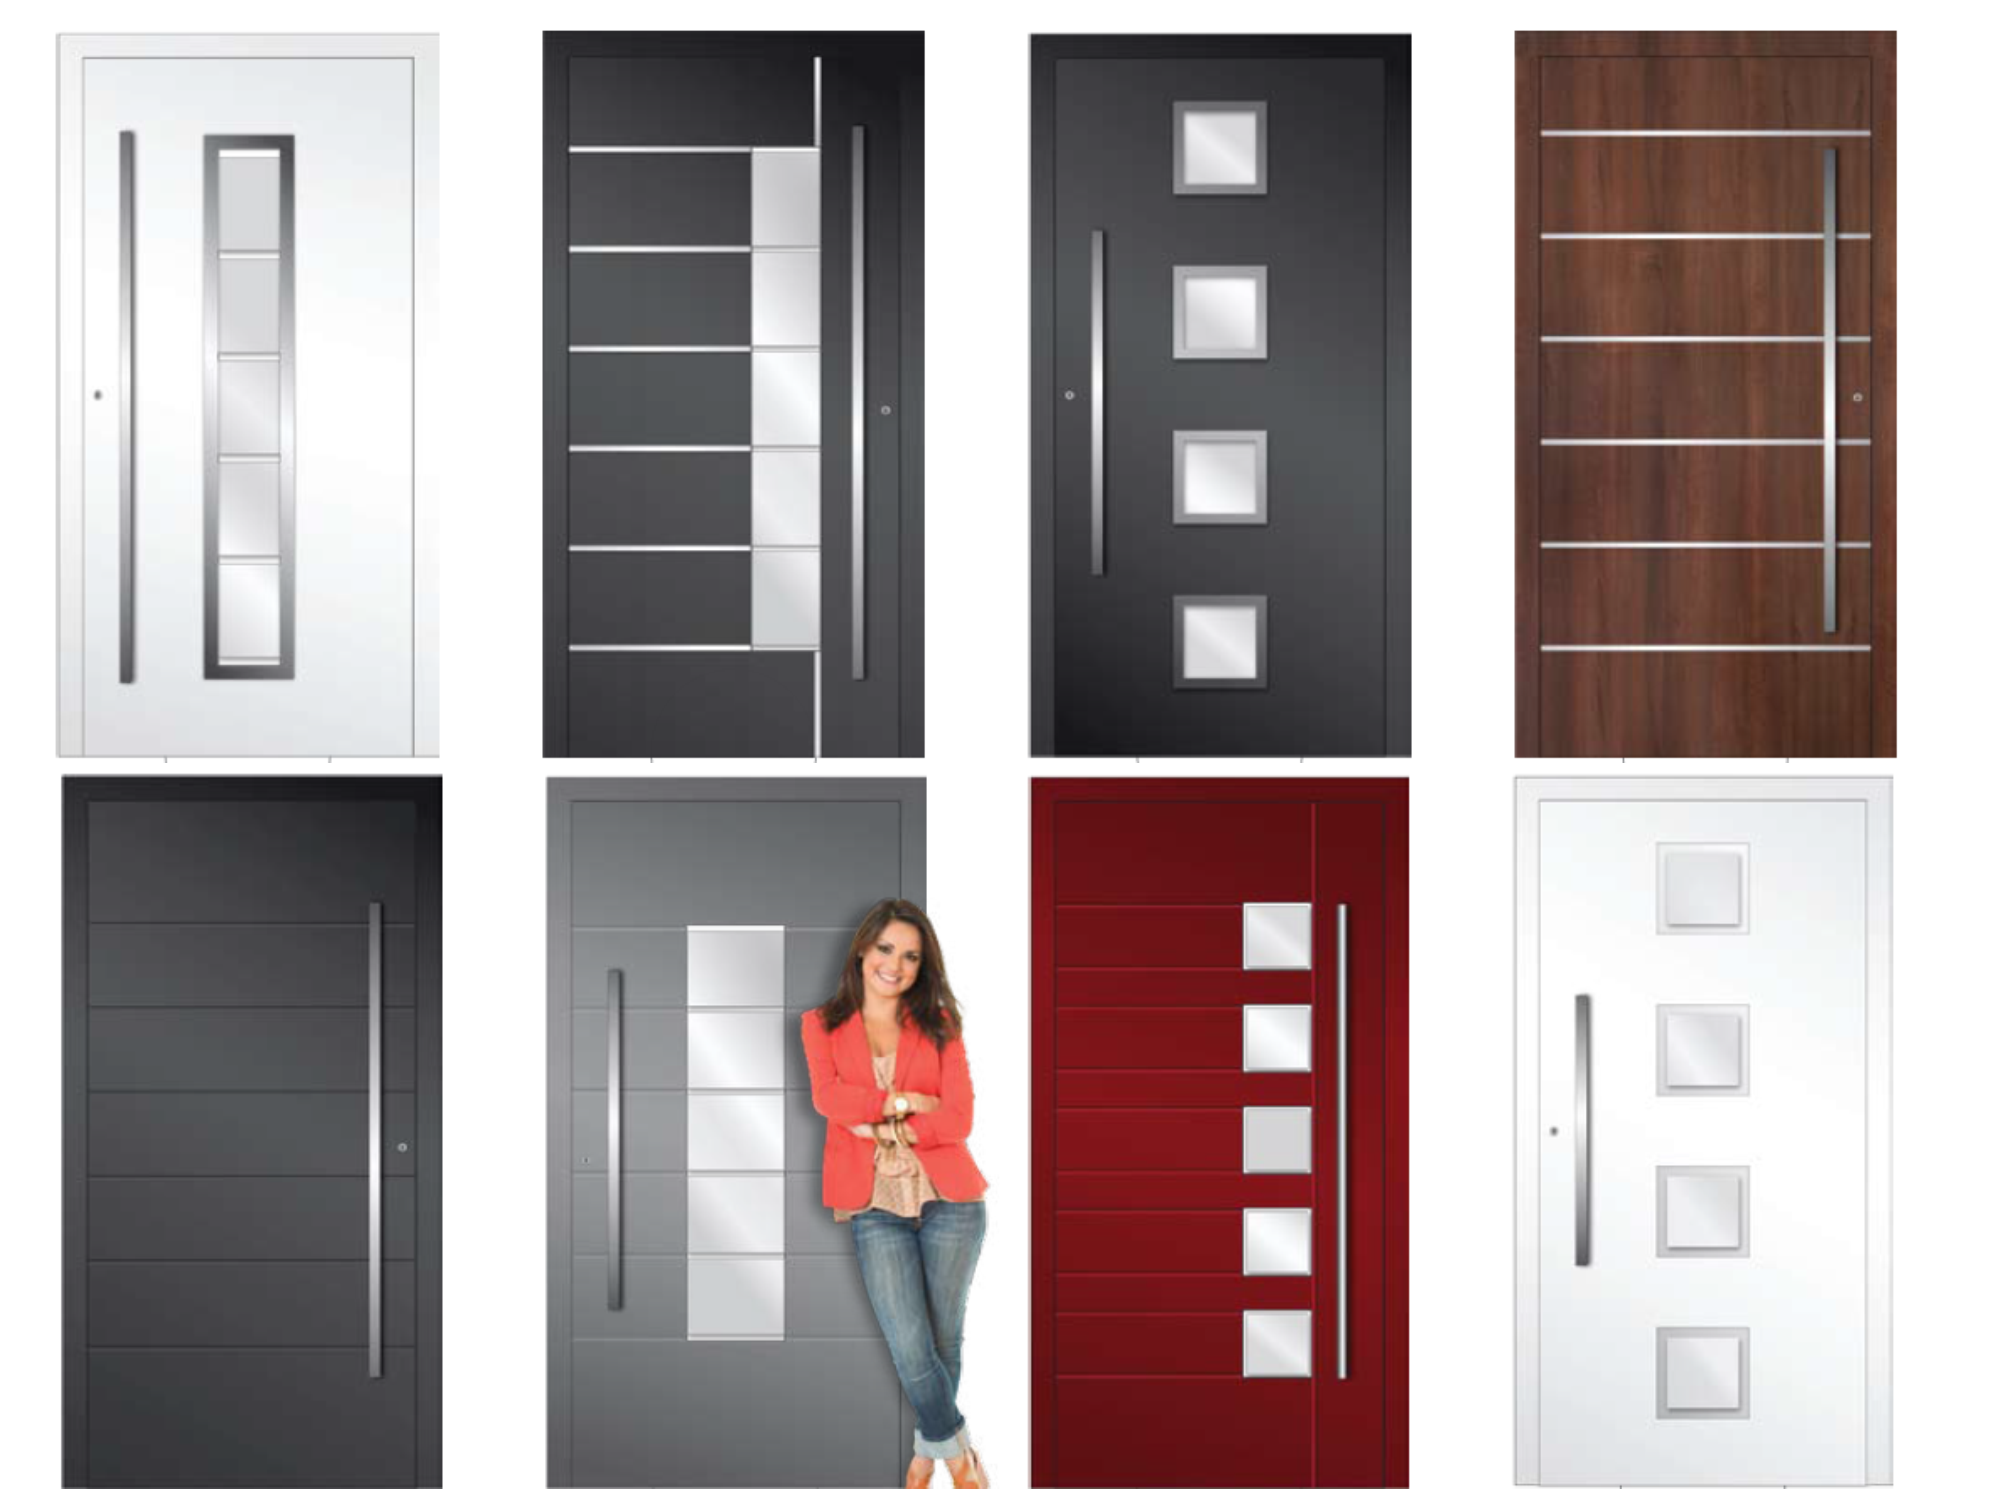 selection of front panel doors